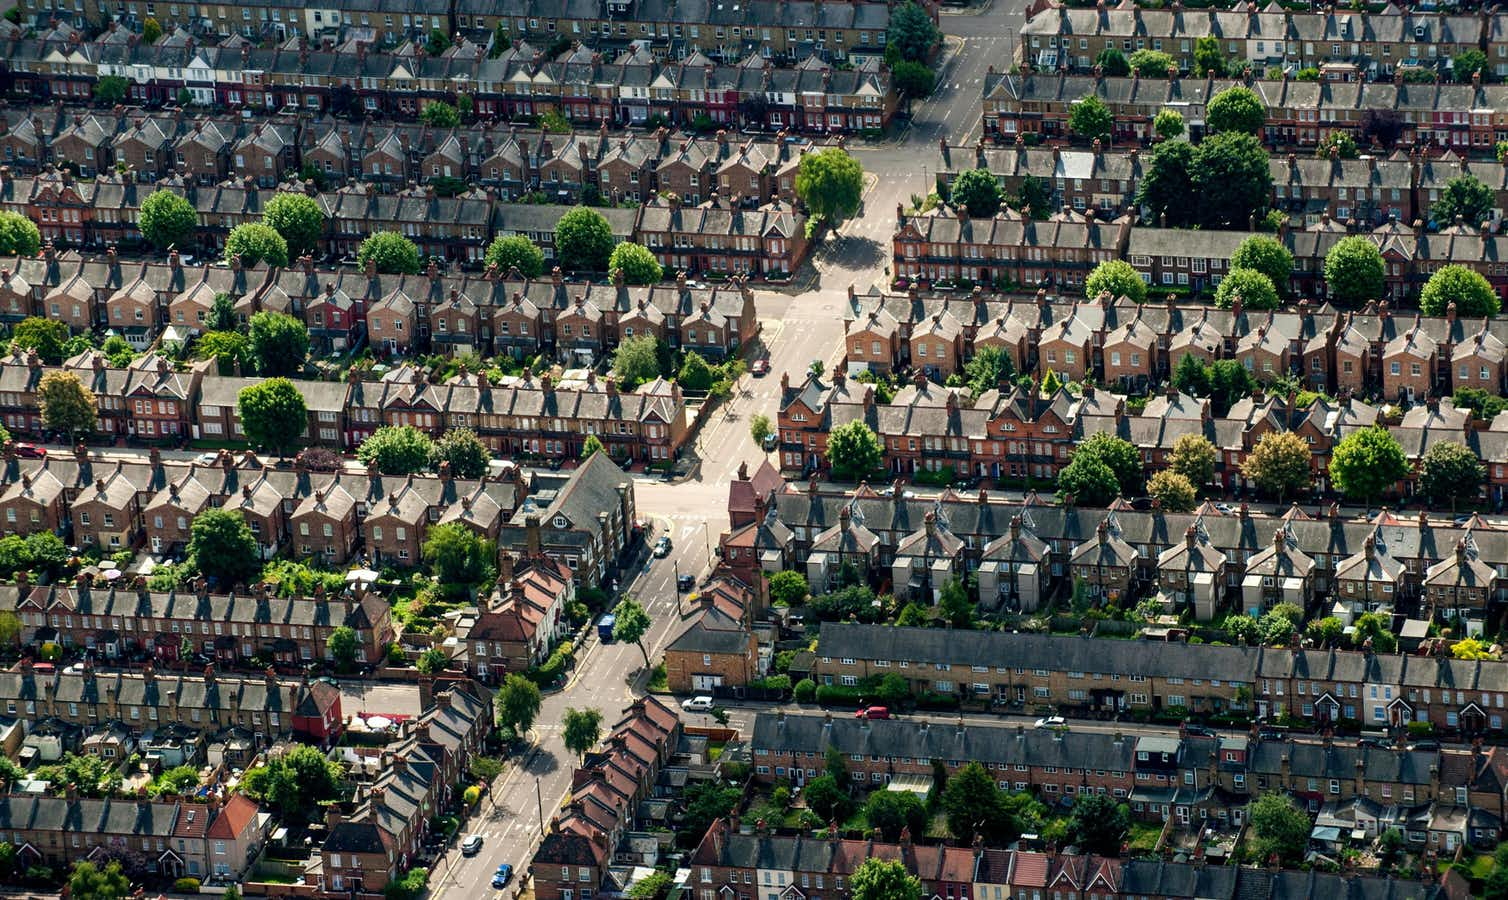 Coronavirus has shone a light on UK's housing crisis – here's how it can be fixed